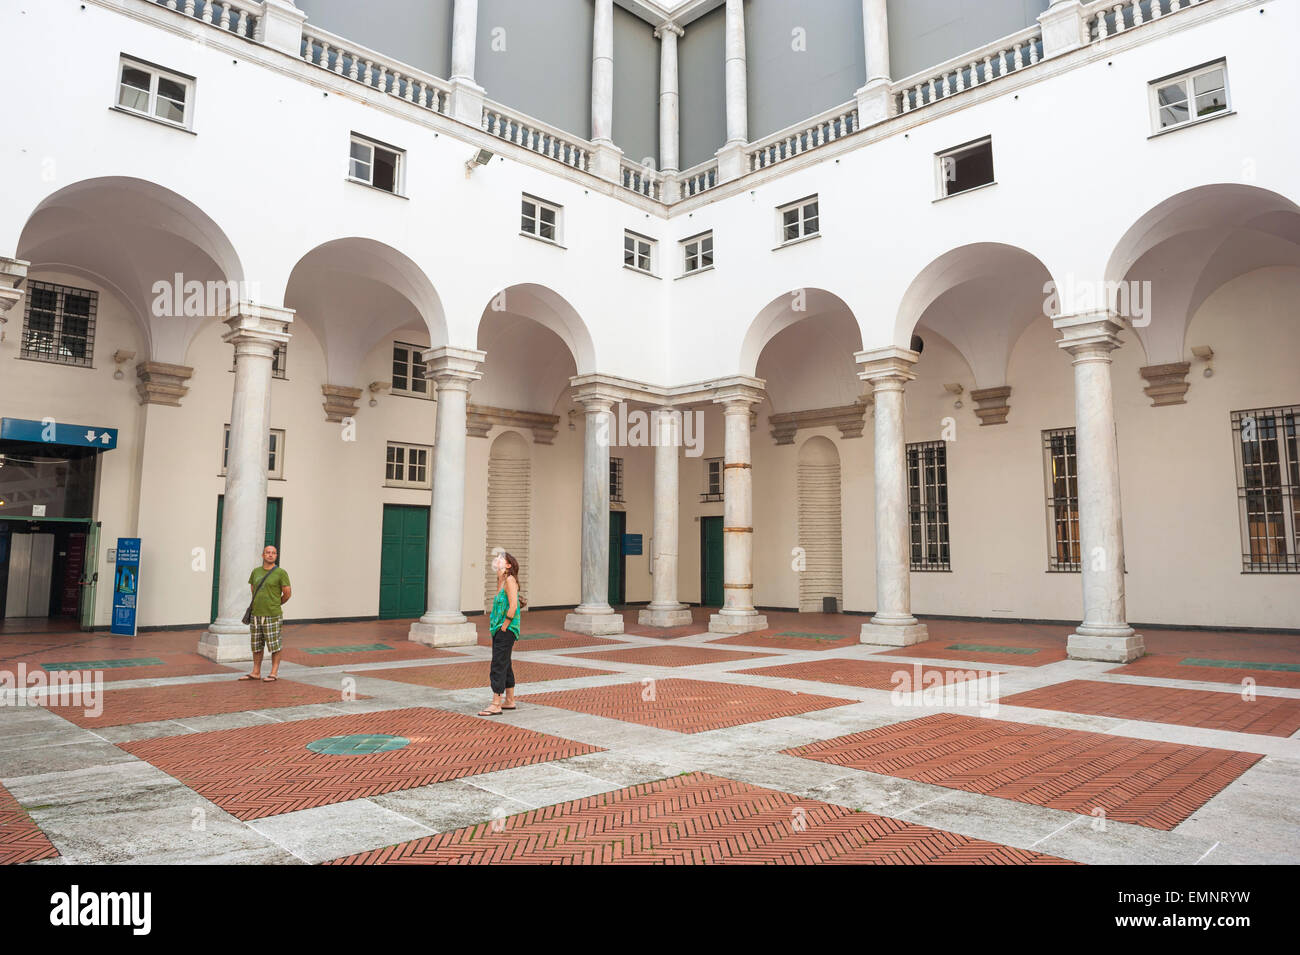 Genoa museum, tourists in the Palazzo Ducale in Genoa pause to appreciate the architecture of its courtyard, Genova, Stock Photo